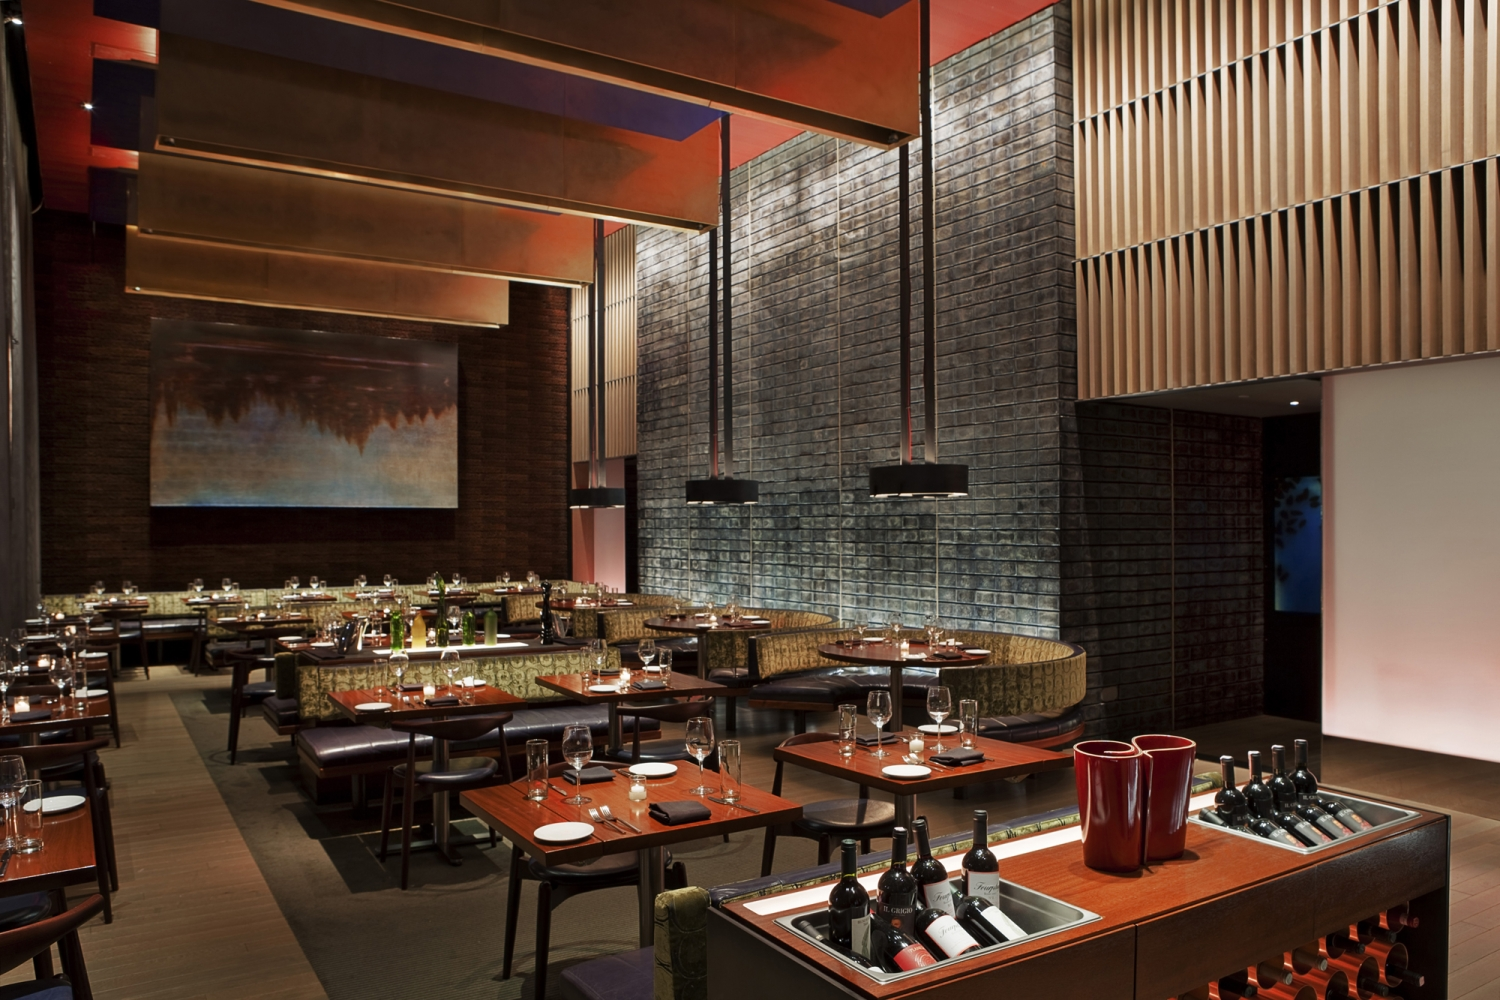 Zylo at the w hotel bentel bentel architects planners for Asian cuisine hoboken nj